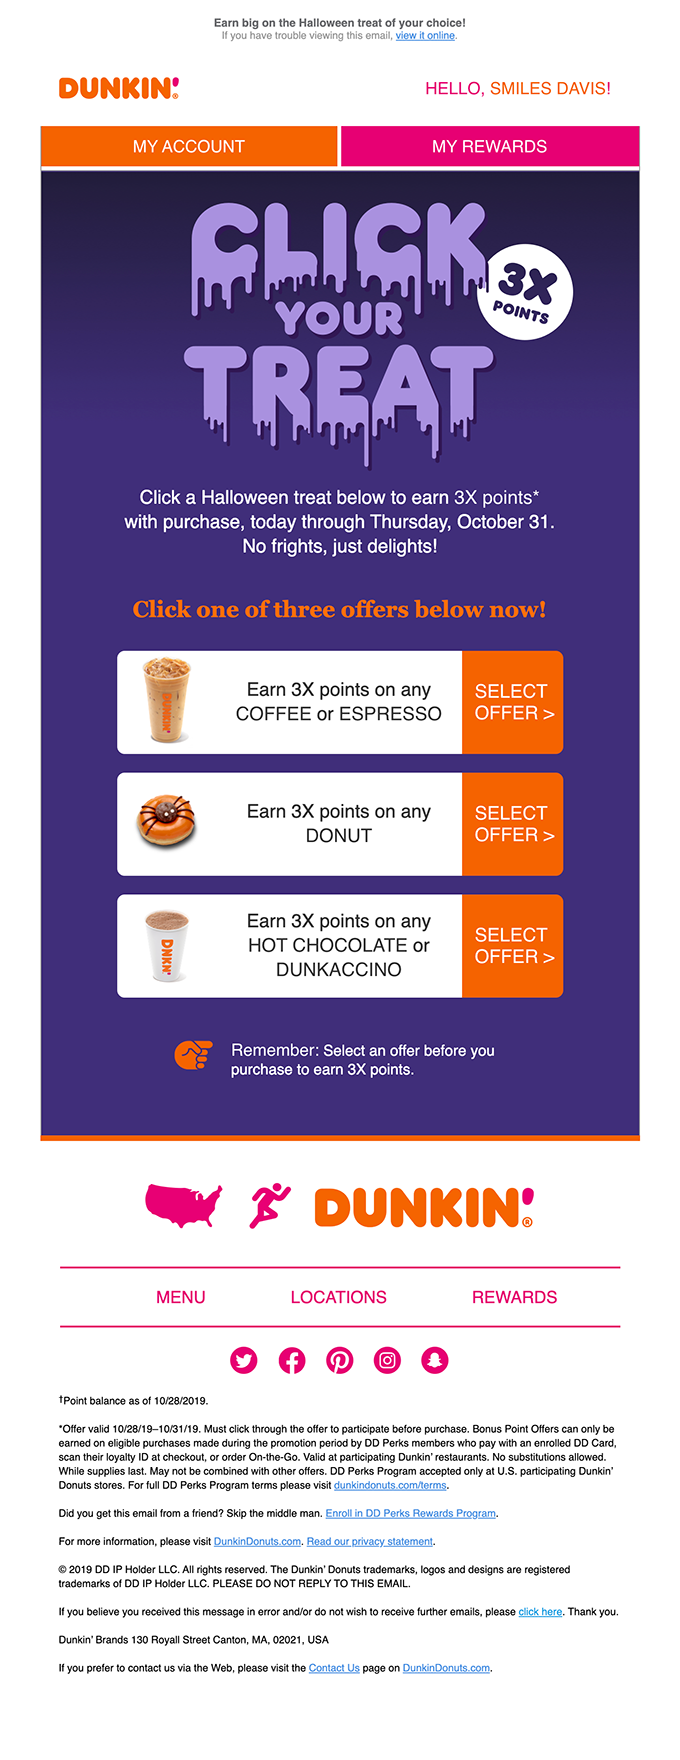 Dunkin' Donuts halloween newsletter featuring a 3x points offer for their loyalty card members.